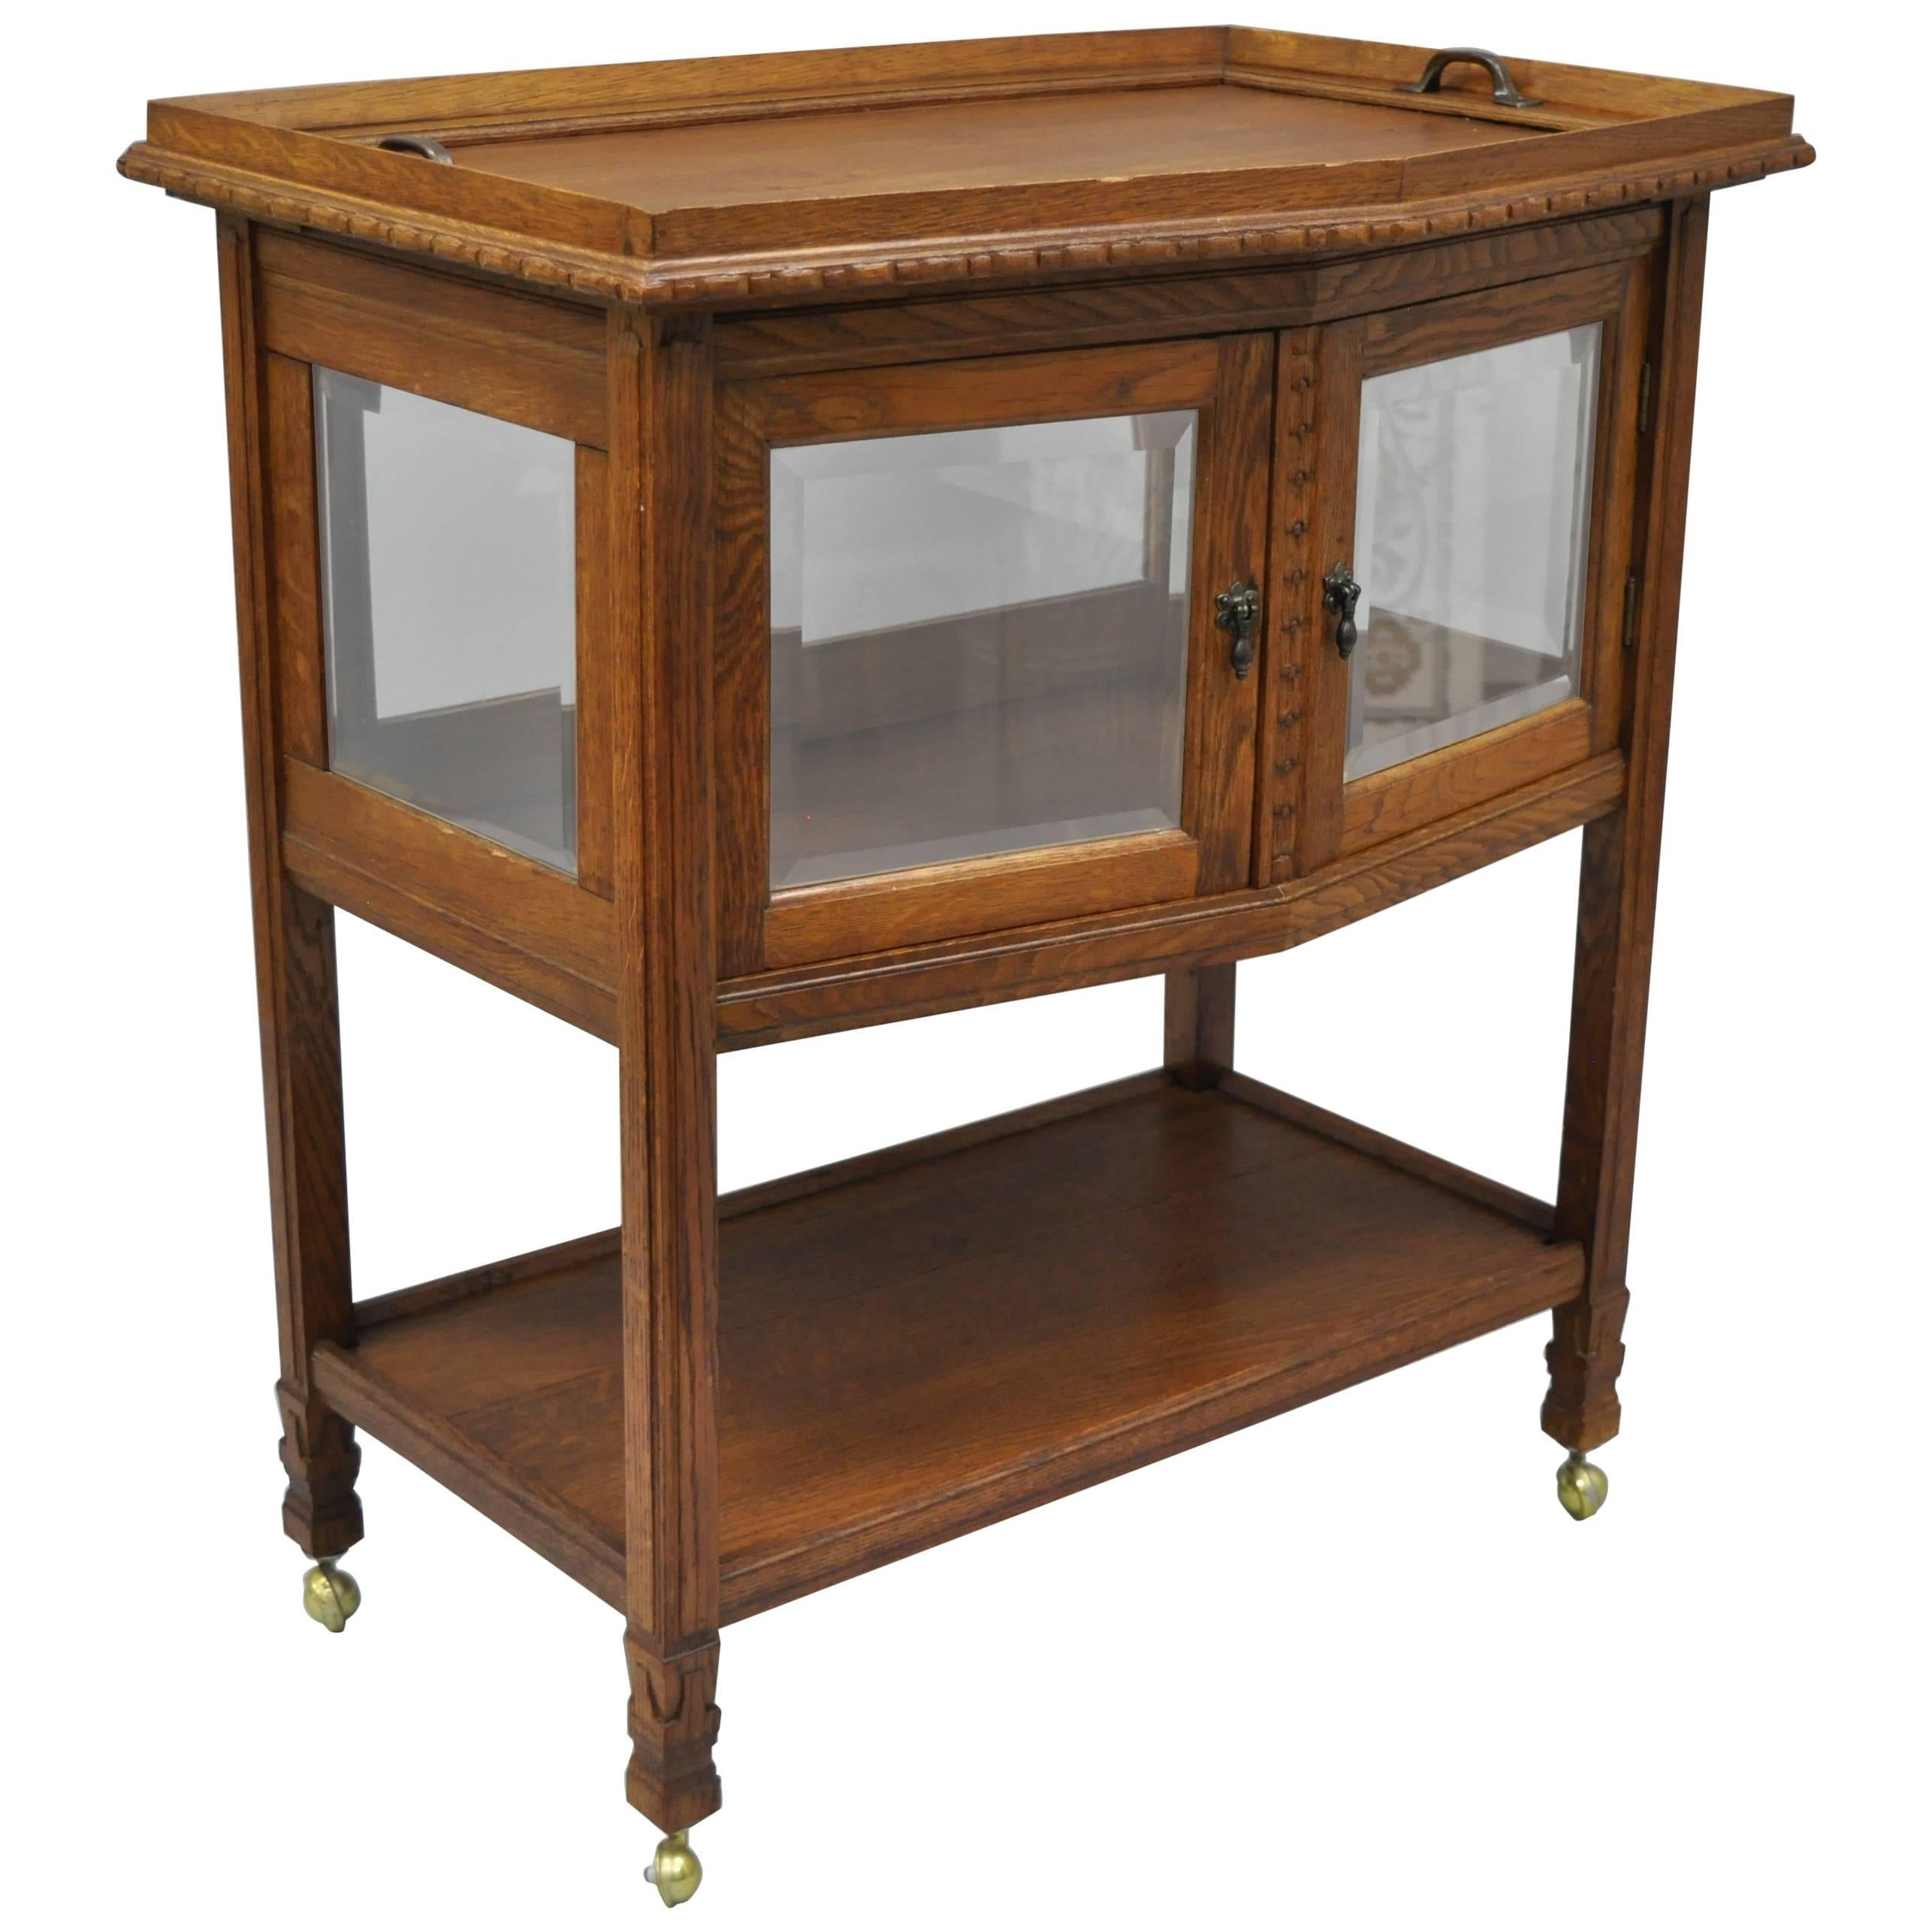 Superbe Antique French Carved Oak Wood Server Bar Cart Glass Display Cabinet Tray  Table For Sale